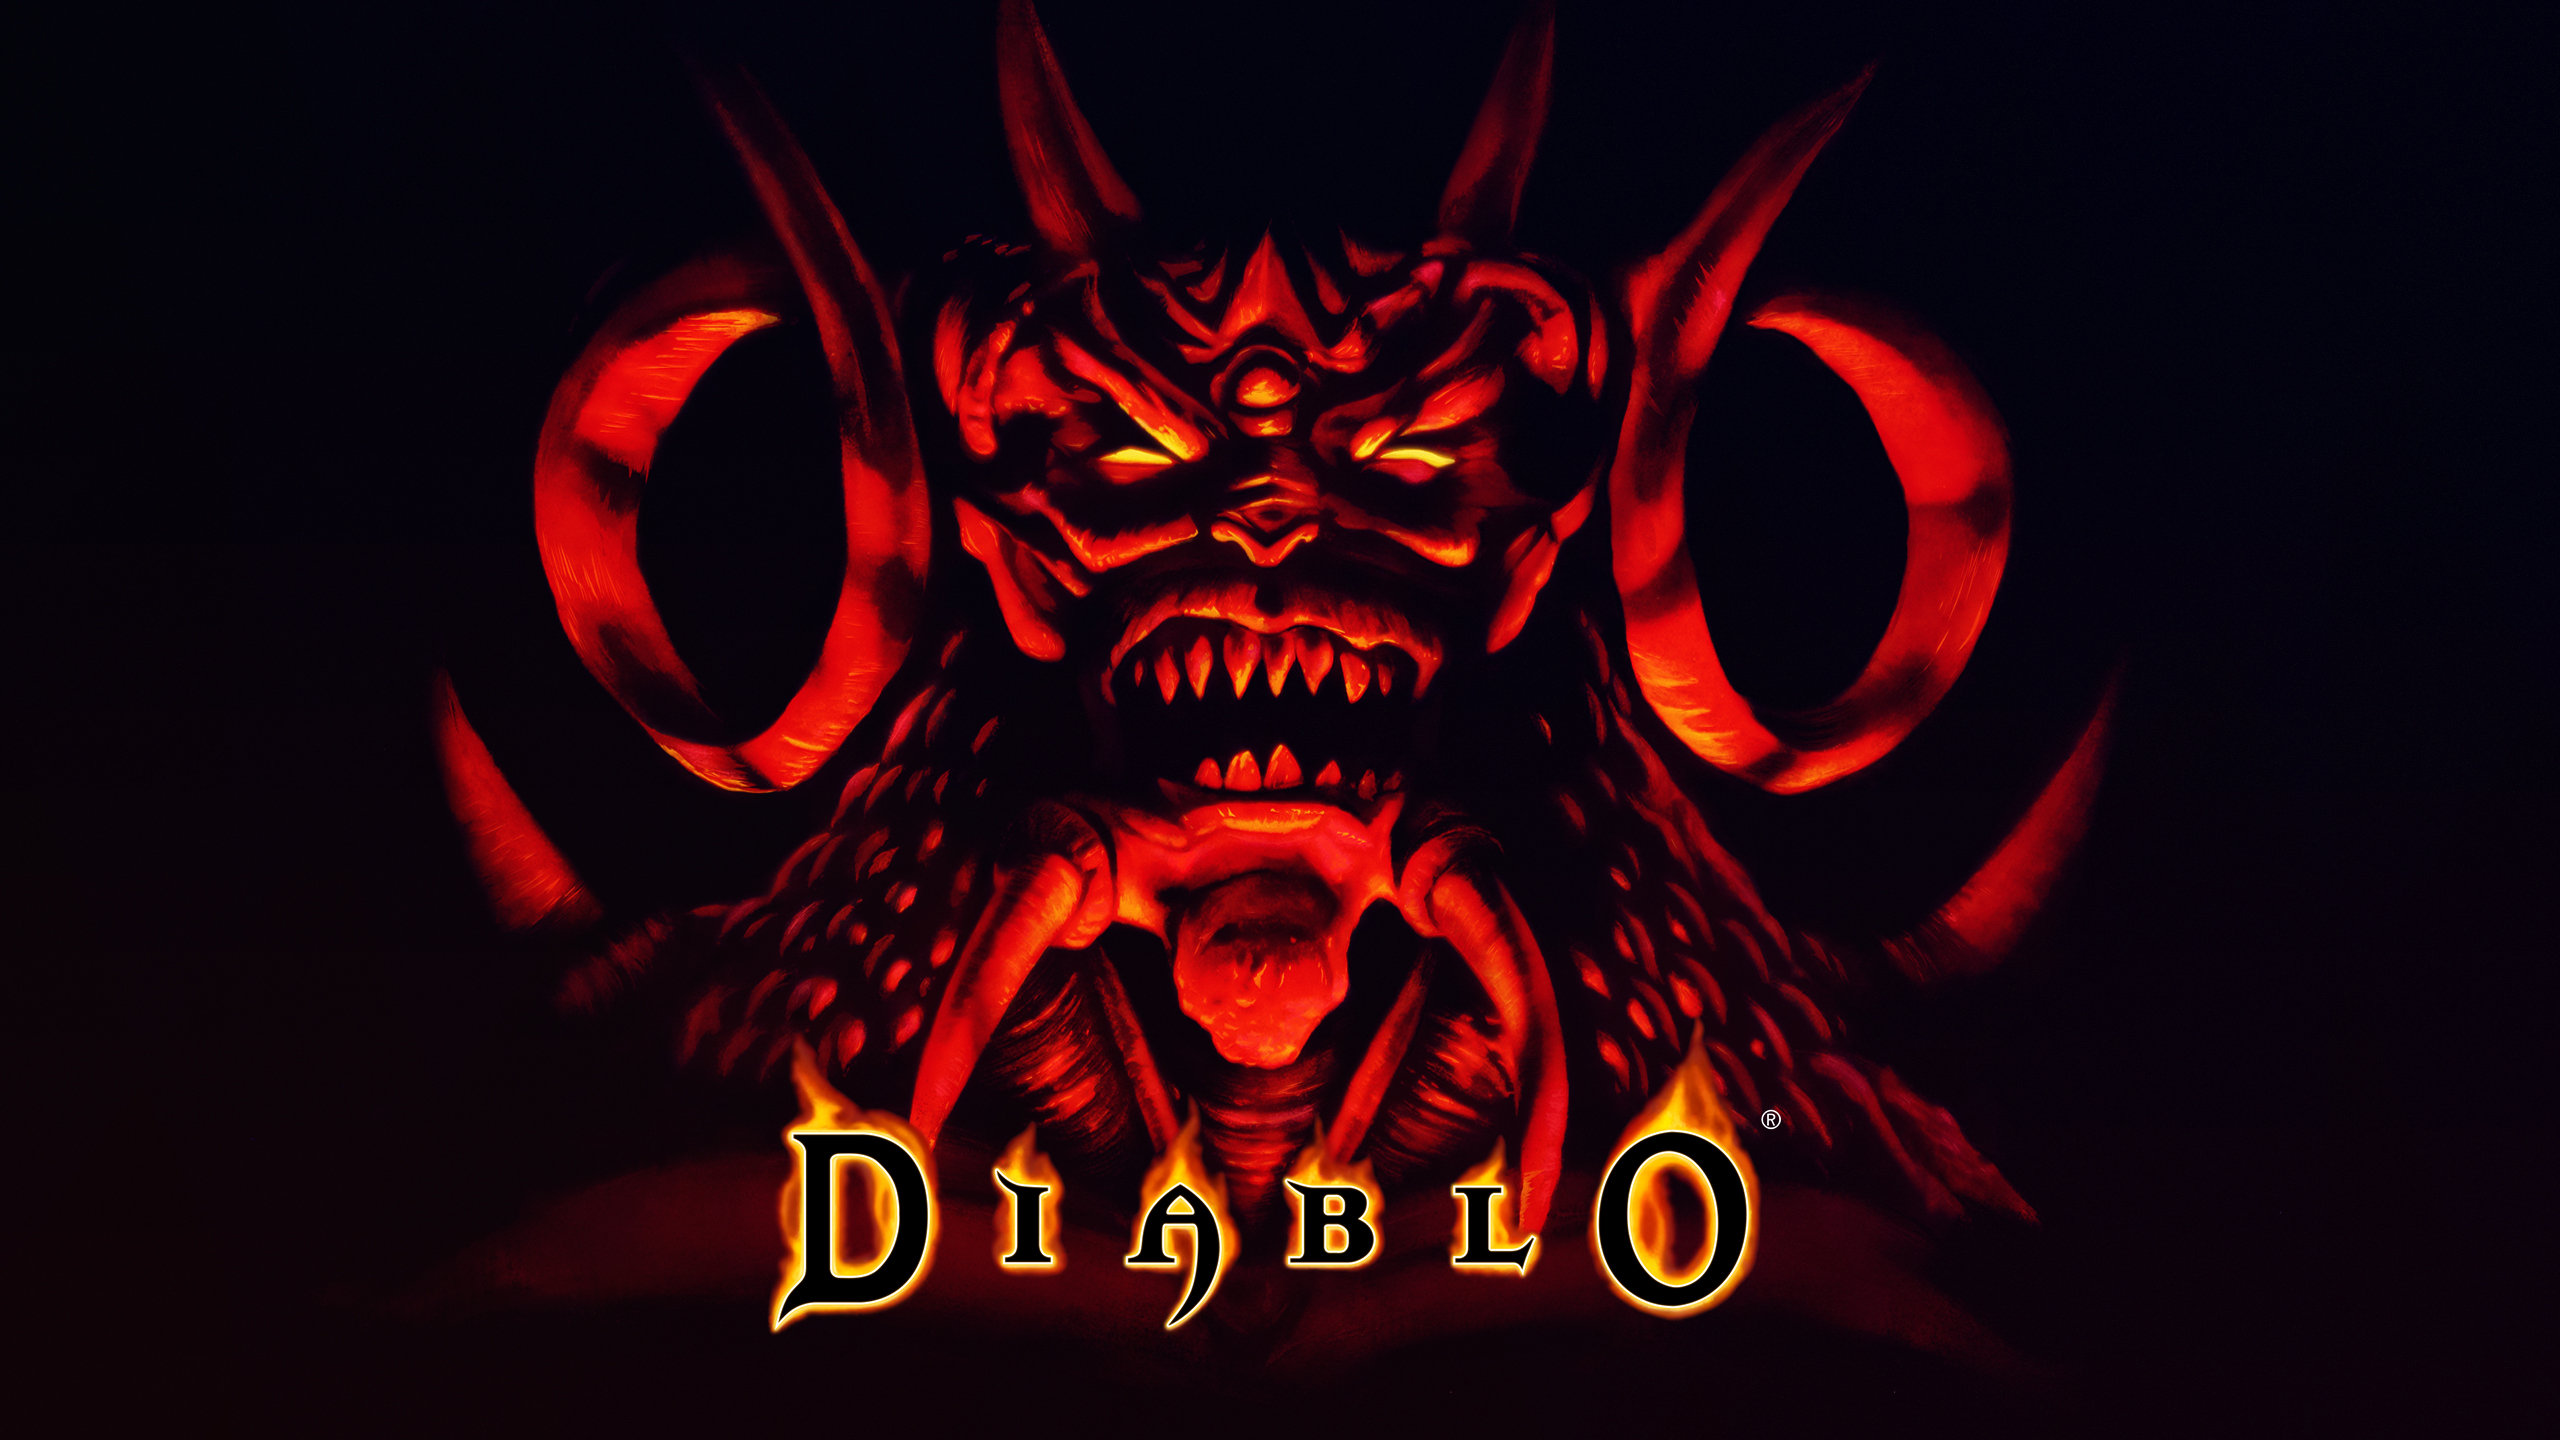 Diablo 1 available on GOG.com as more Blizzard classics planned